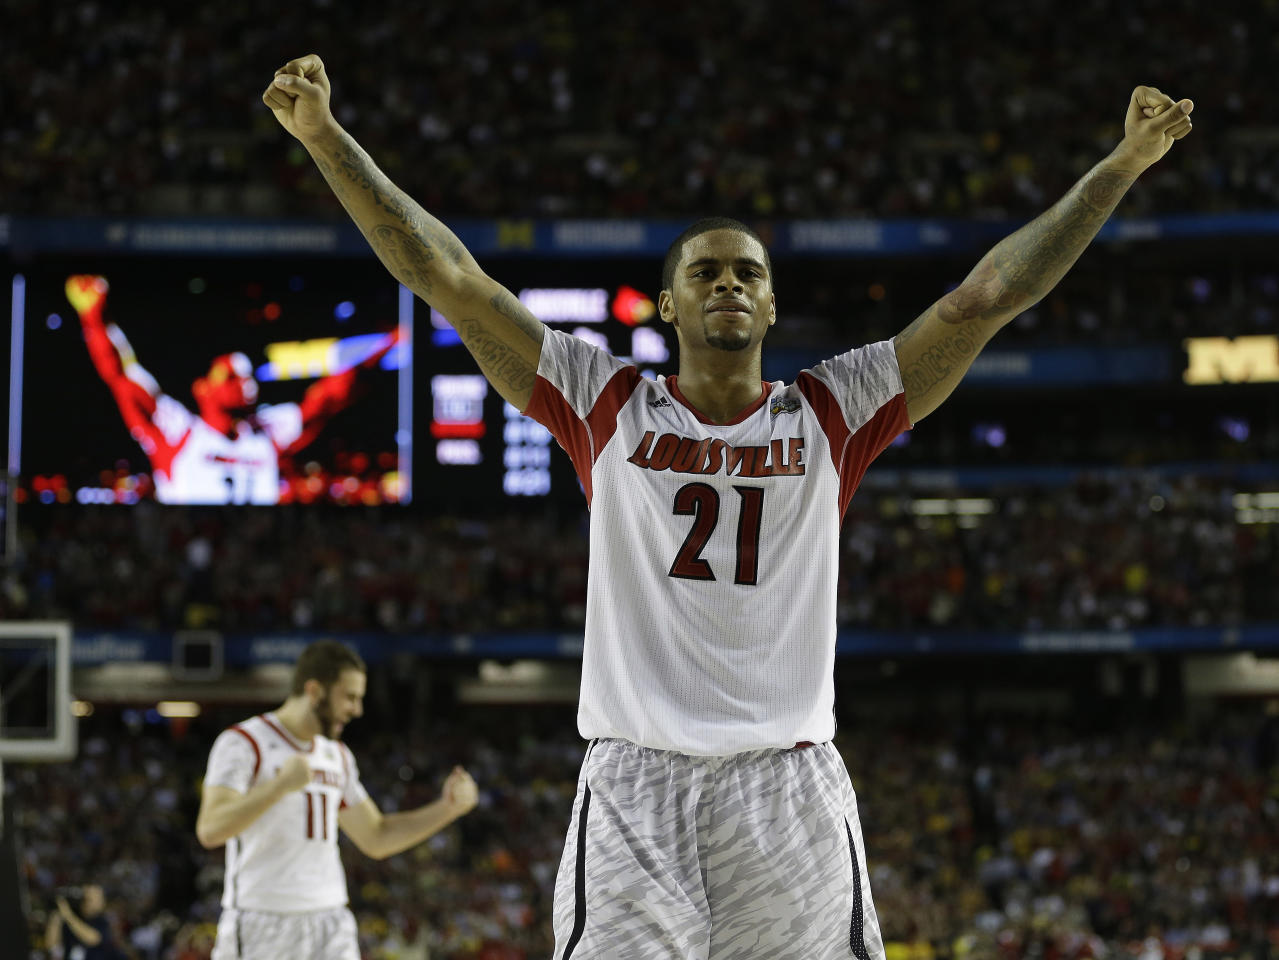 Louisville forward Chane Behanan (21) reacts after defeating Michigan 82-76 in the NCAA Final Four tournament college basketball championship game, Monday, April 8, 2013, in Atlanta. (AP Photo/David J. Phillip)